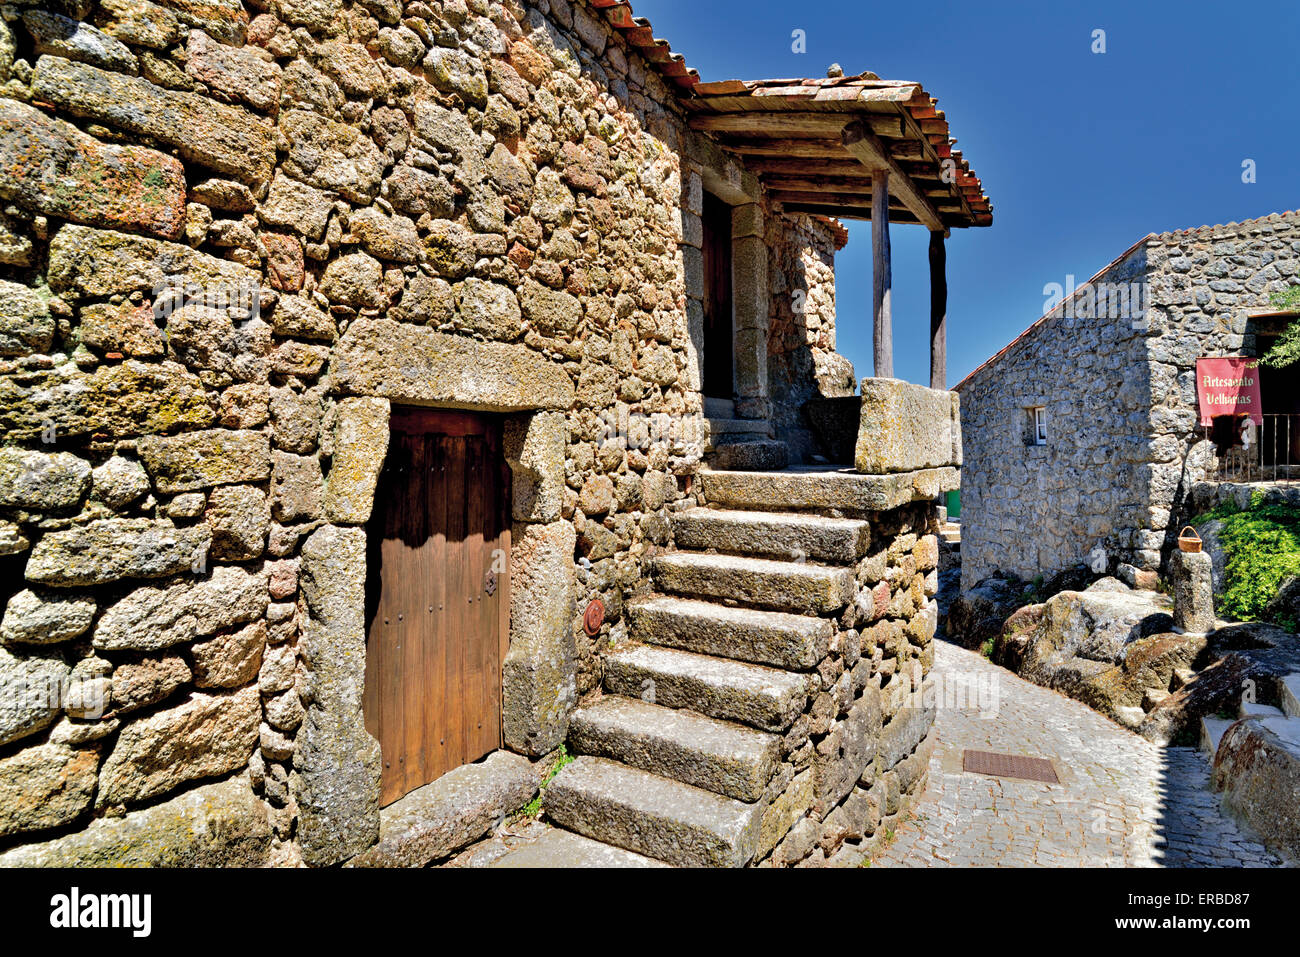 Portugal: Typical stone house in the historic village of Monsanto - Stock Image